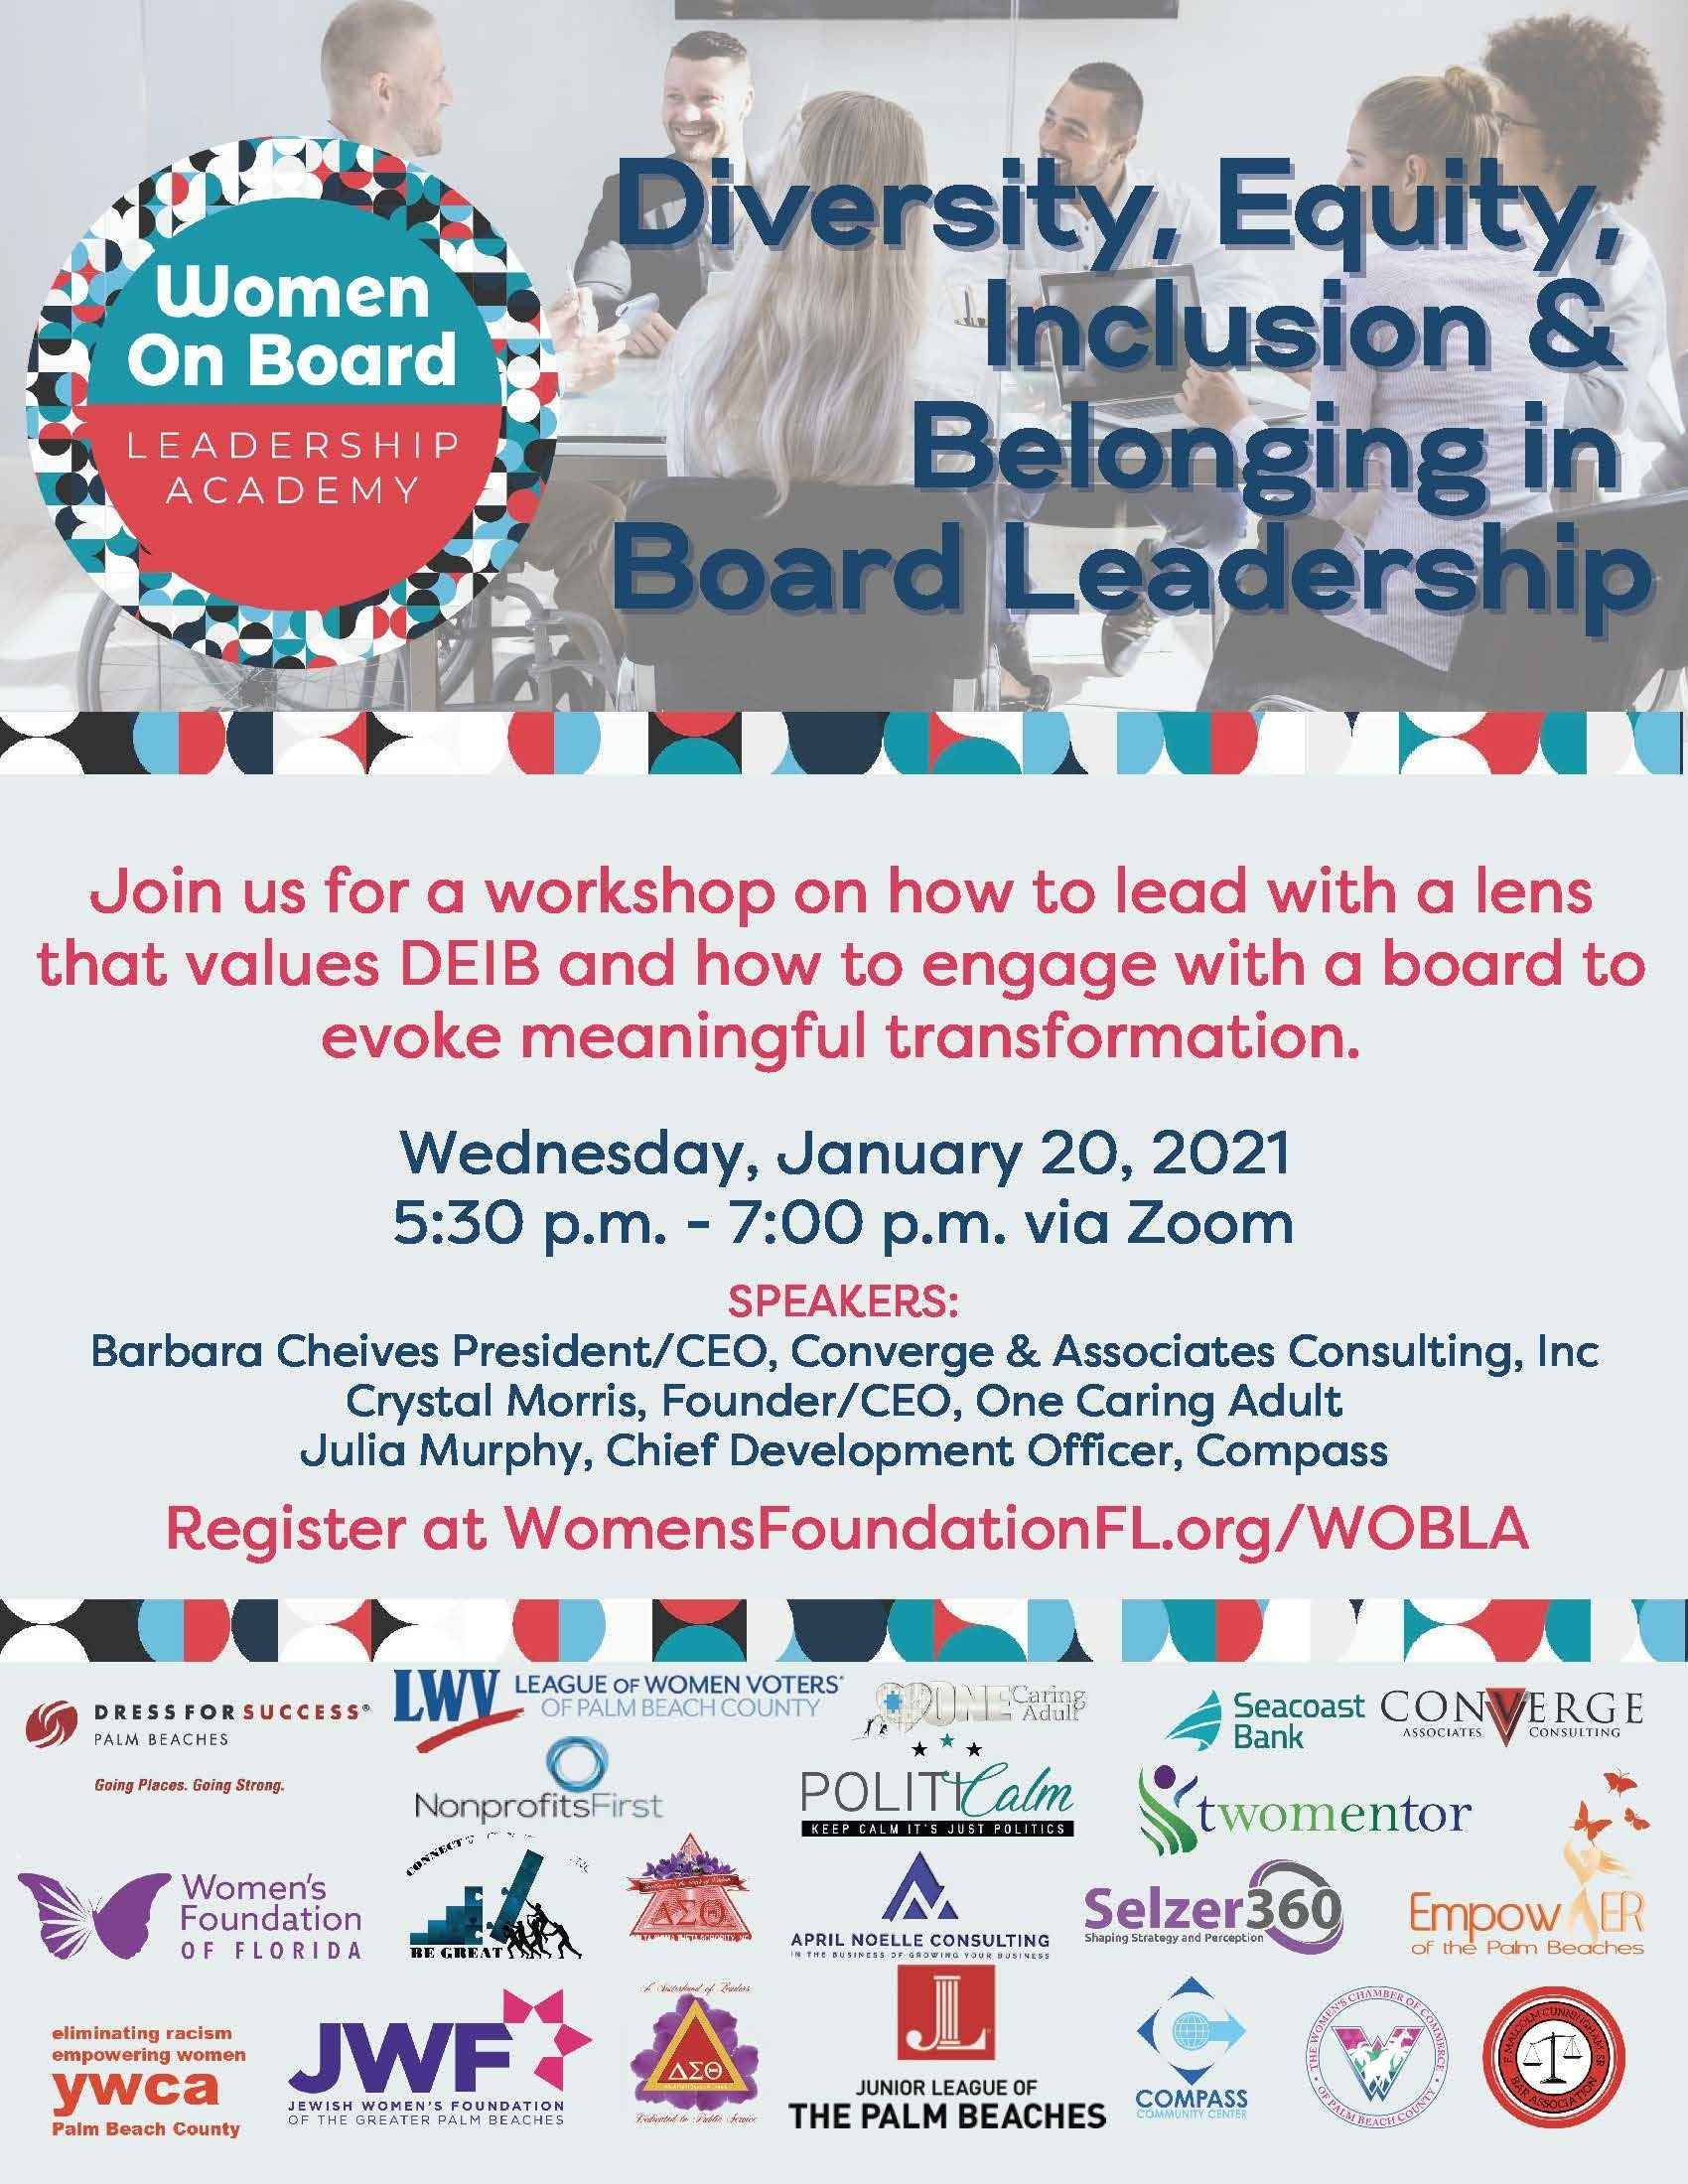 Women on Board Leadership Academy  image